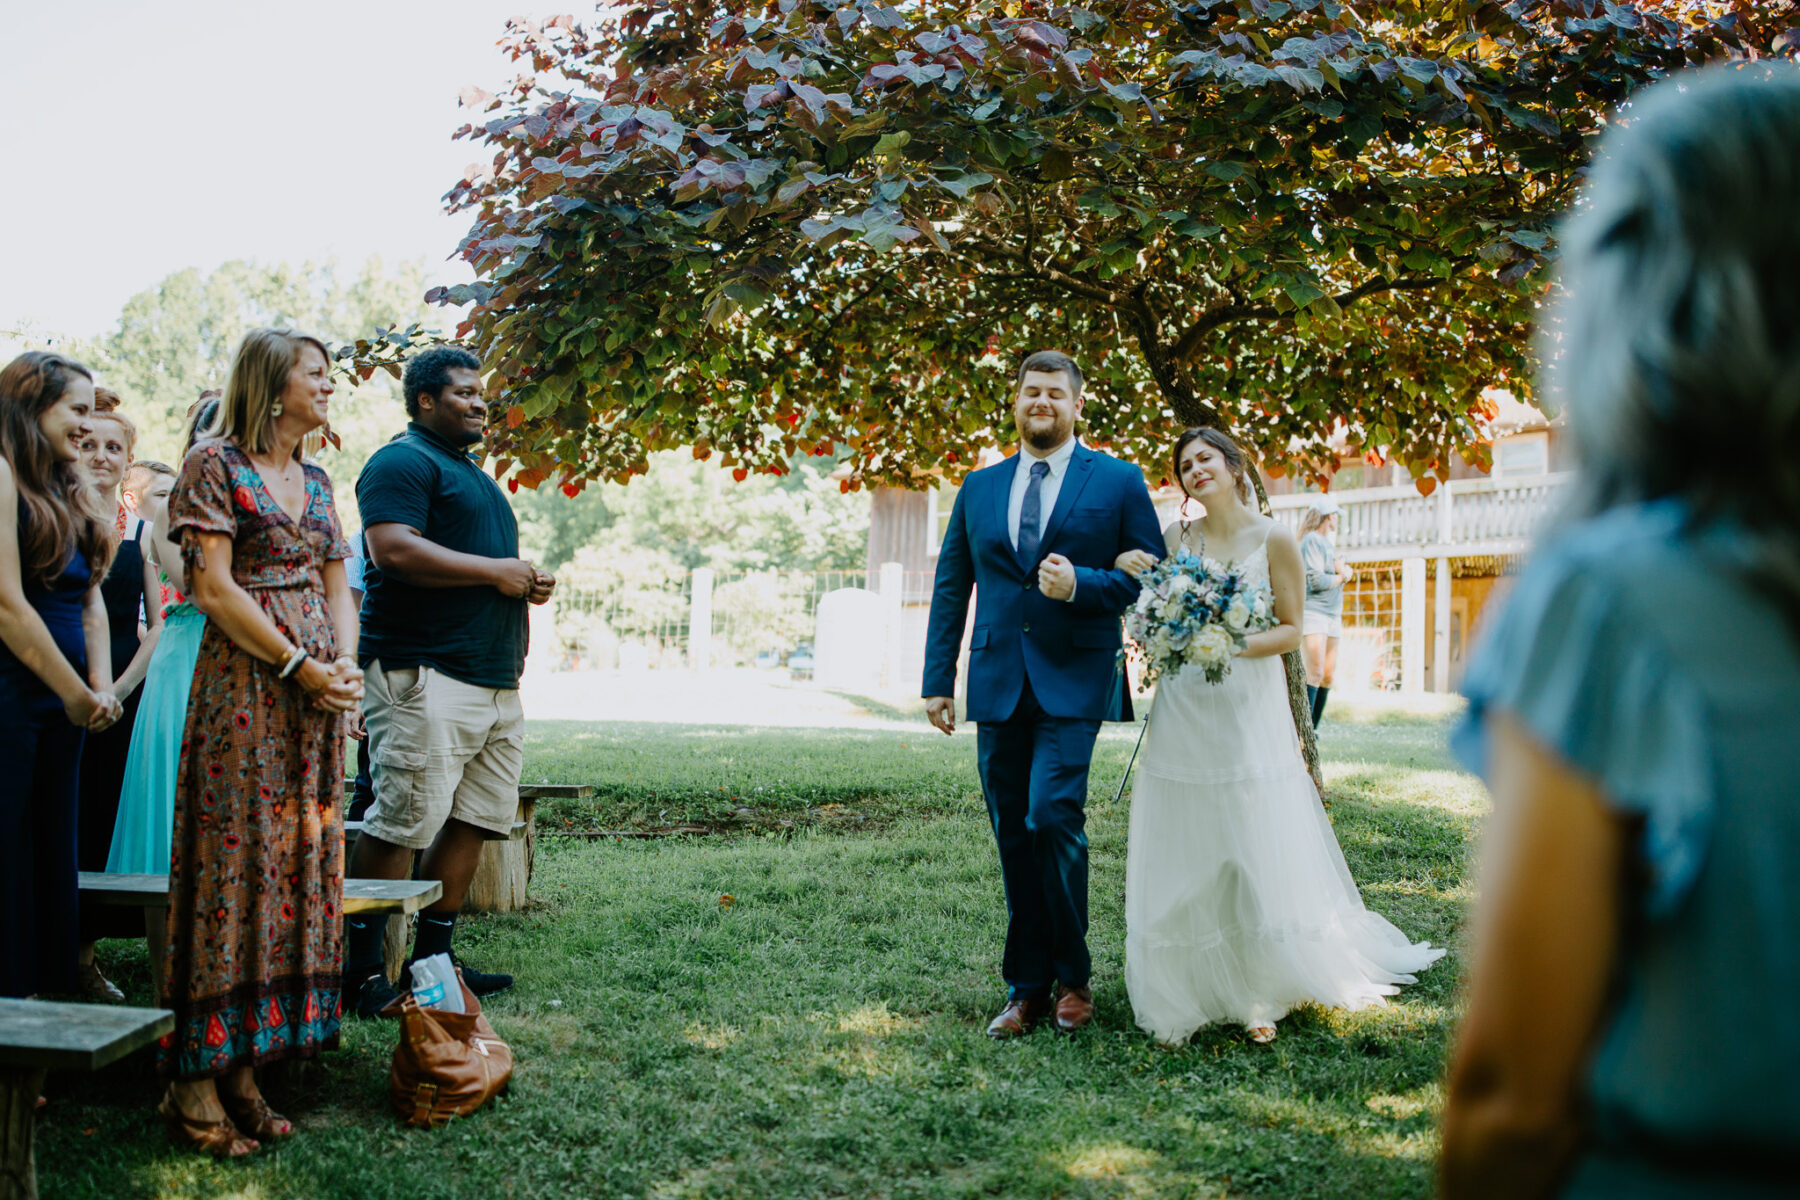 Outdoor wedding: Vibrant Summer Wedding at Sinking Creek Farm featured on Nashville Bride Guide